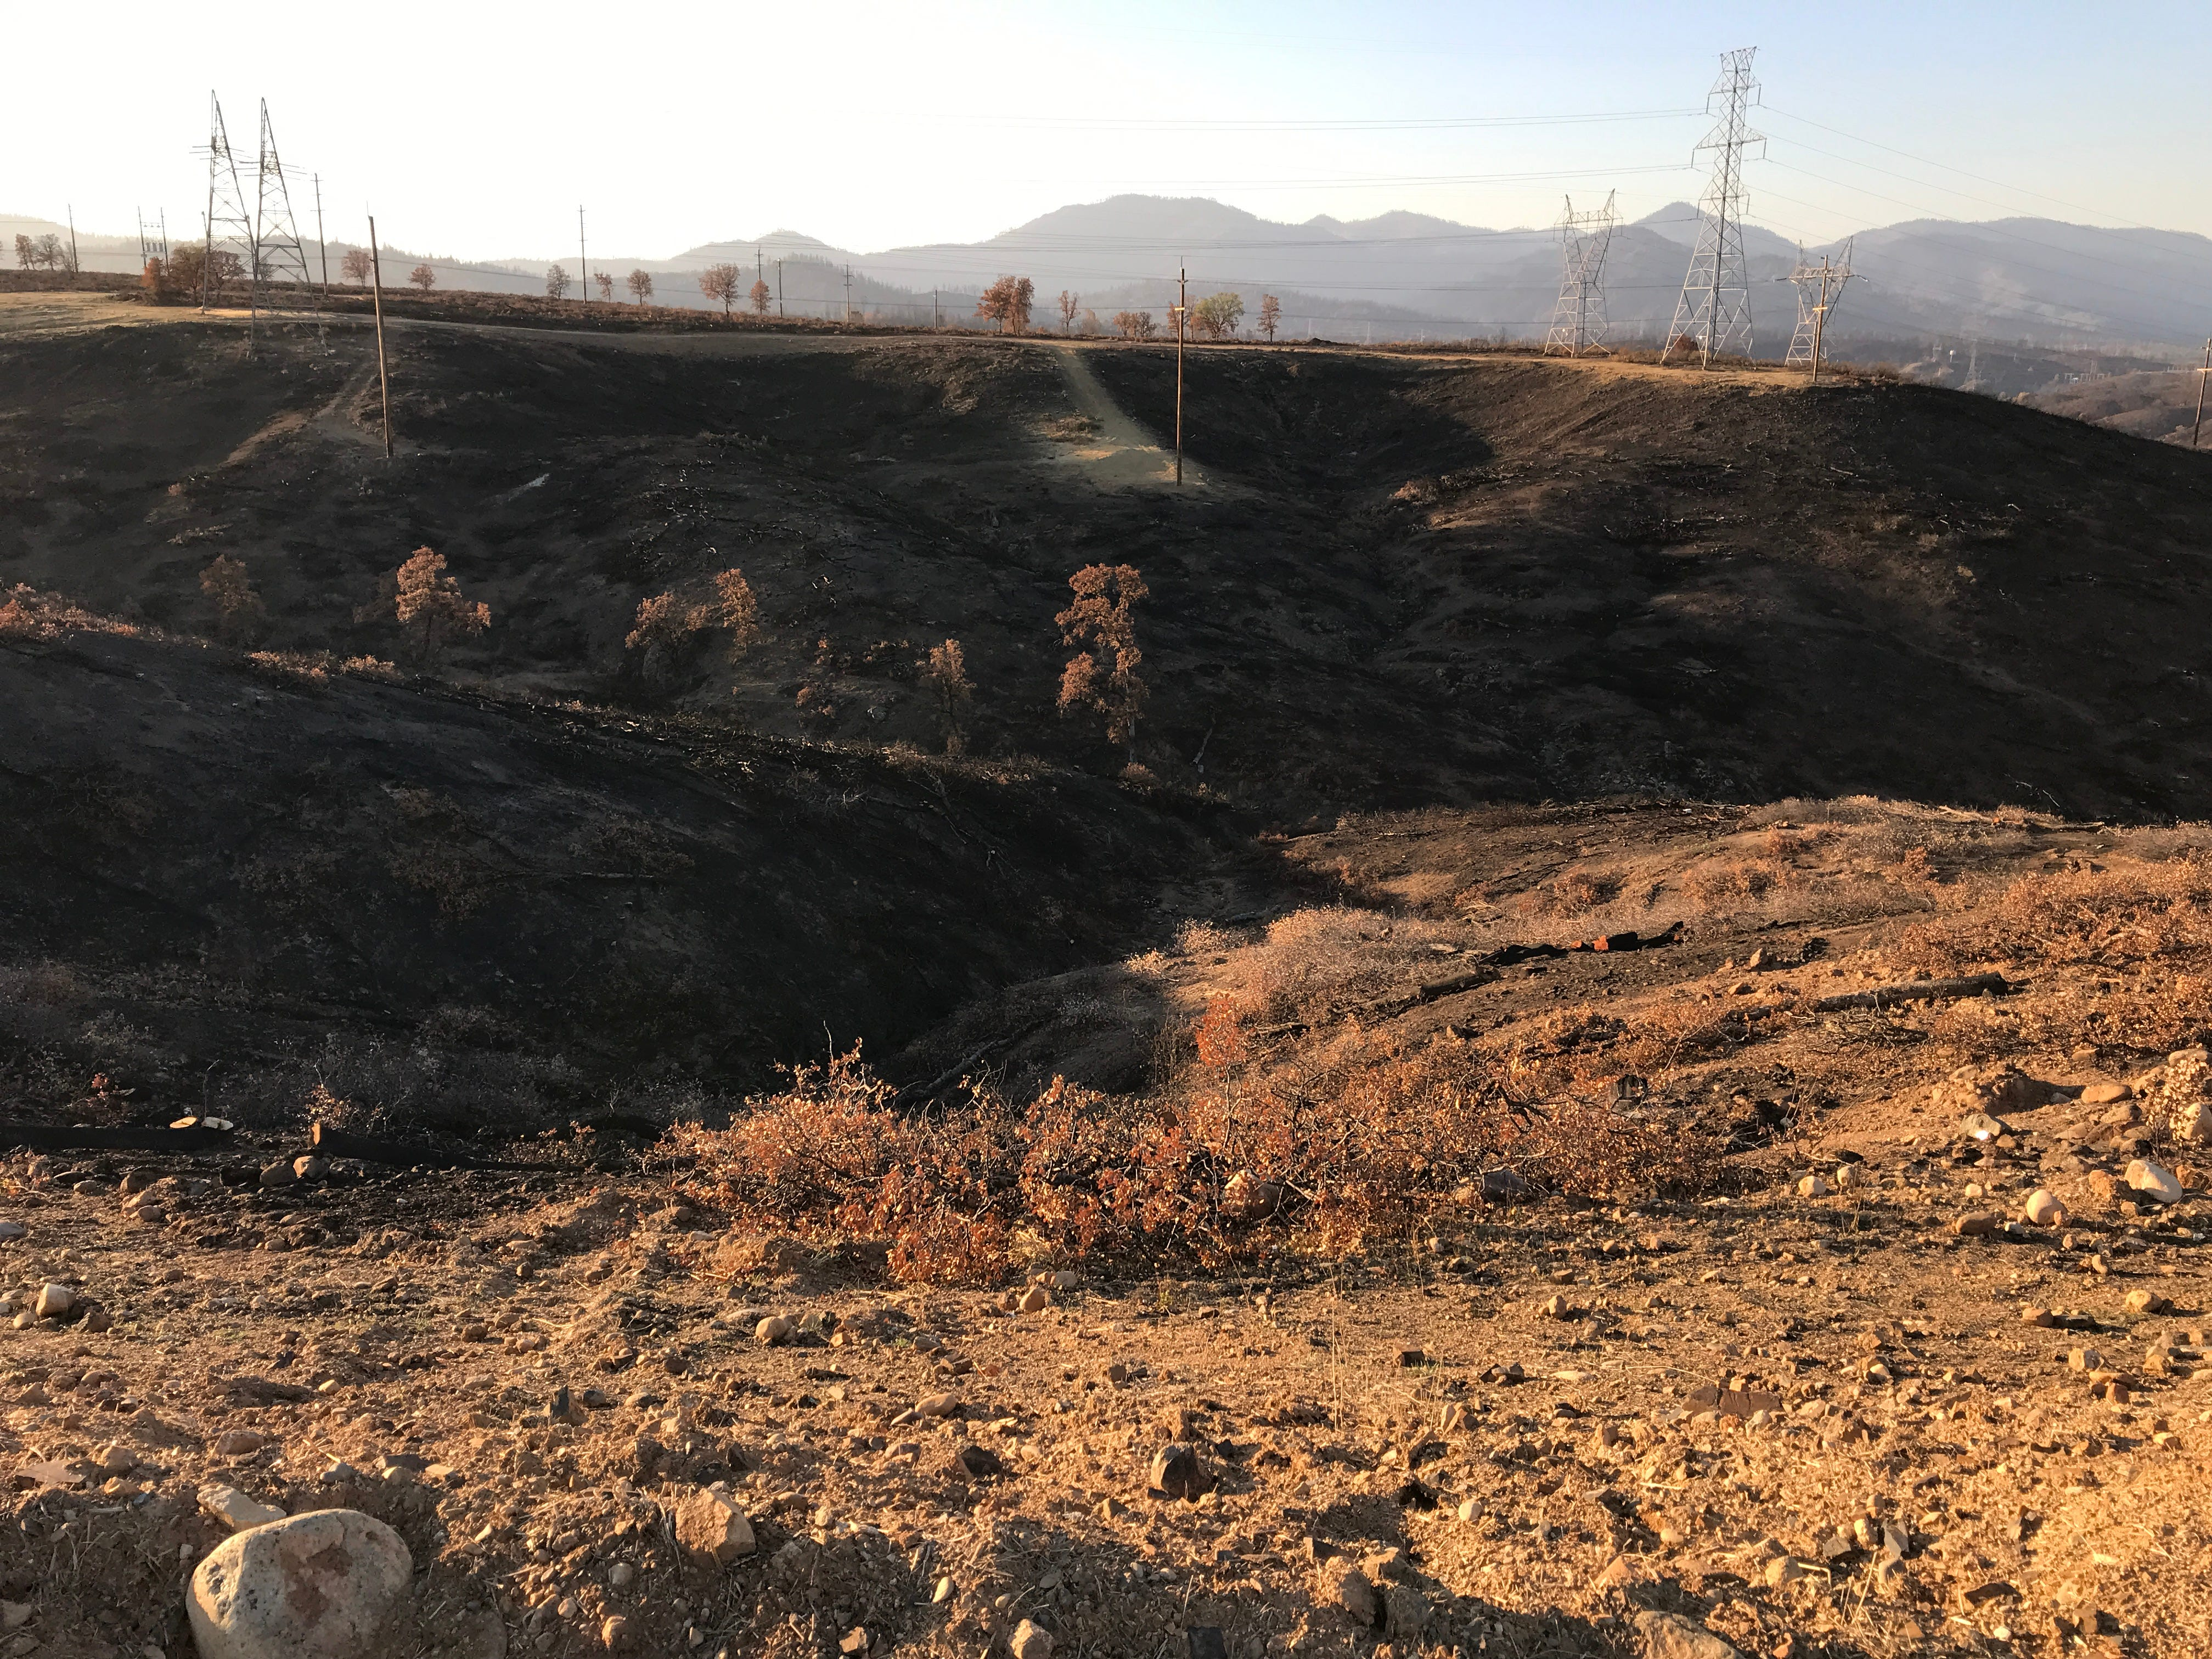 """The Carr Fire burned dense brush, described as a """"Wall of Death,"""" in this ravine west of the Salt Creek Heights subdivision under construction in Redding. The developer had already removed vegetation before the Carr Fire hit. Redding Fire Marshal Craig Wittner called the previously-standing manzanita and other downhill brush as a """"Wall of Death"""" due to the extreme fire hazard it posed."""